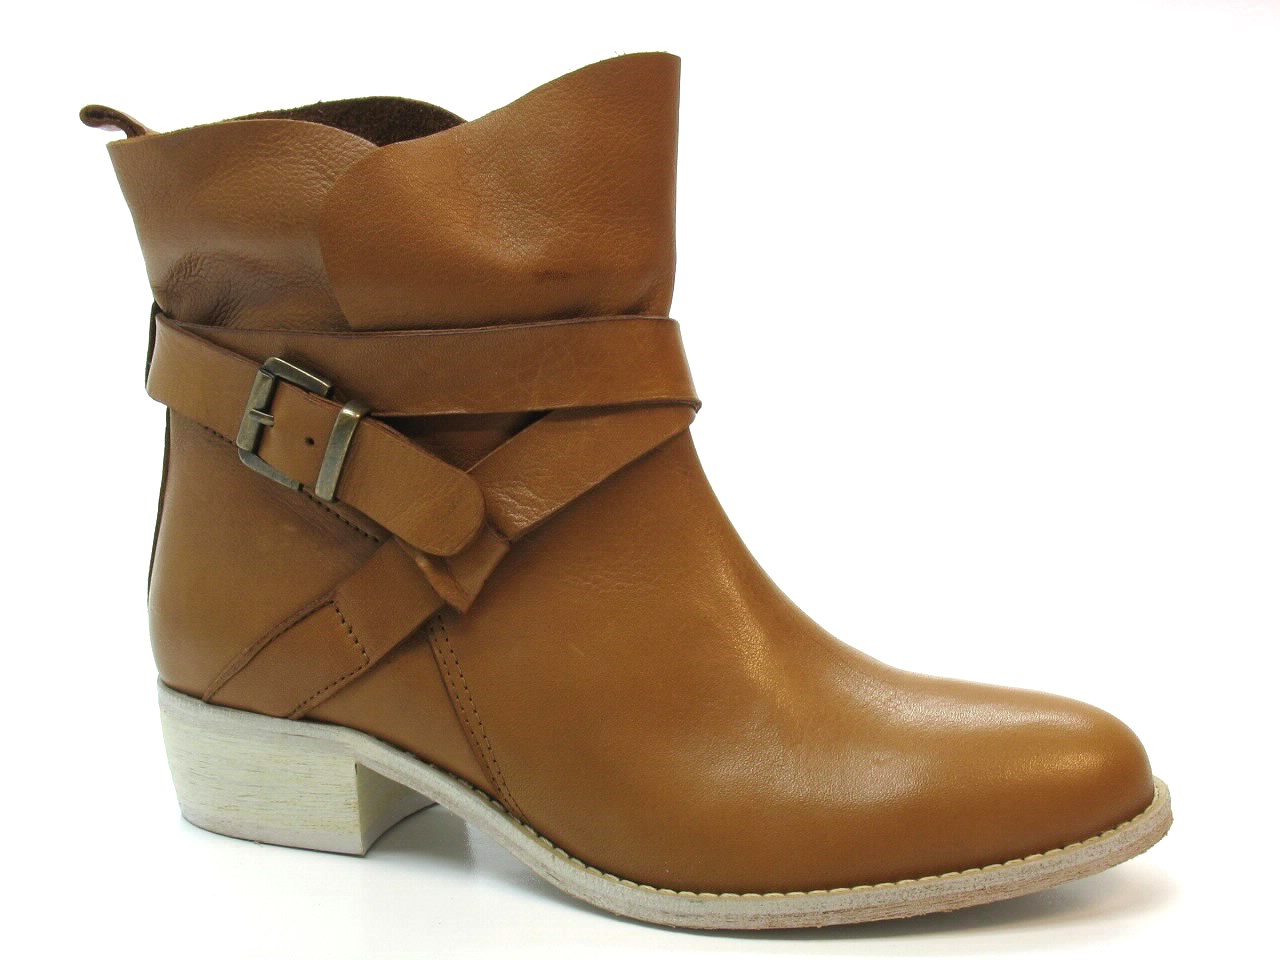 Flat Ankle Boots Sofia Costa - 085 6611